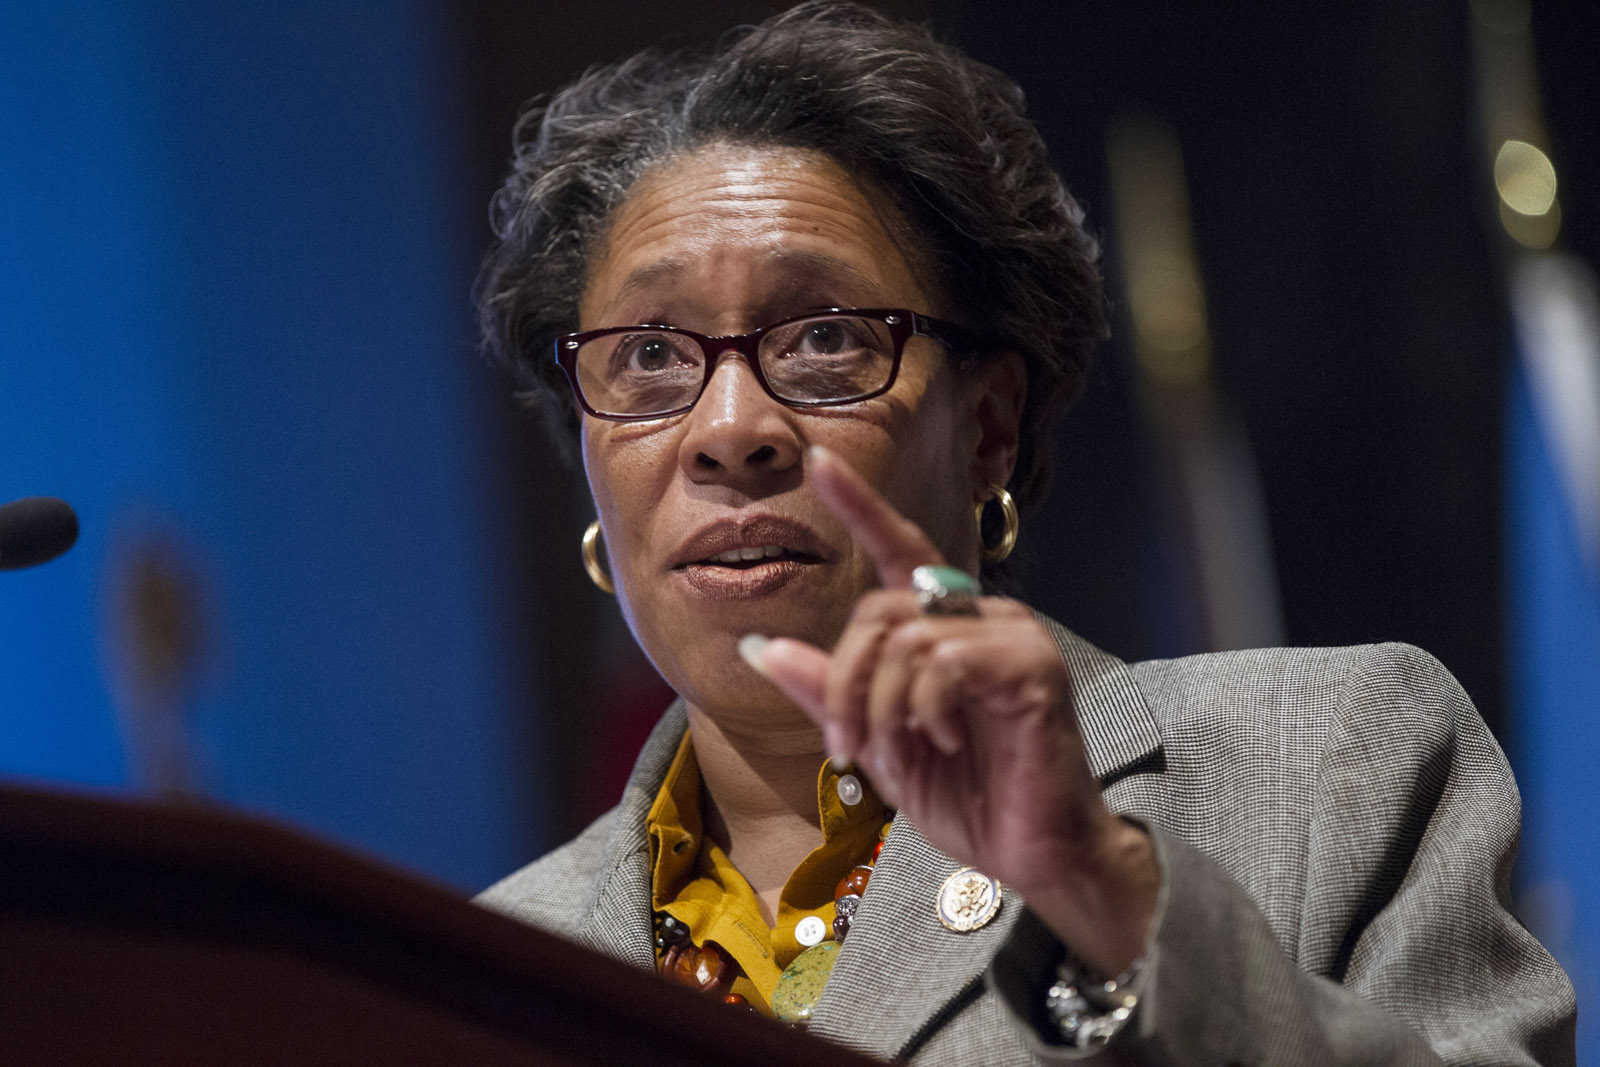 Rep. Marcia Fudge